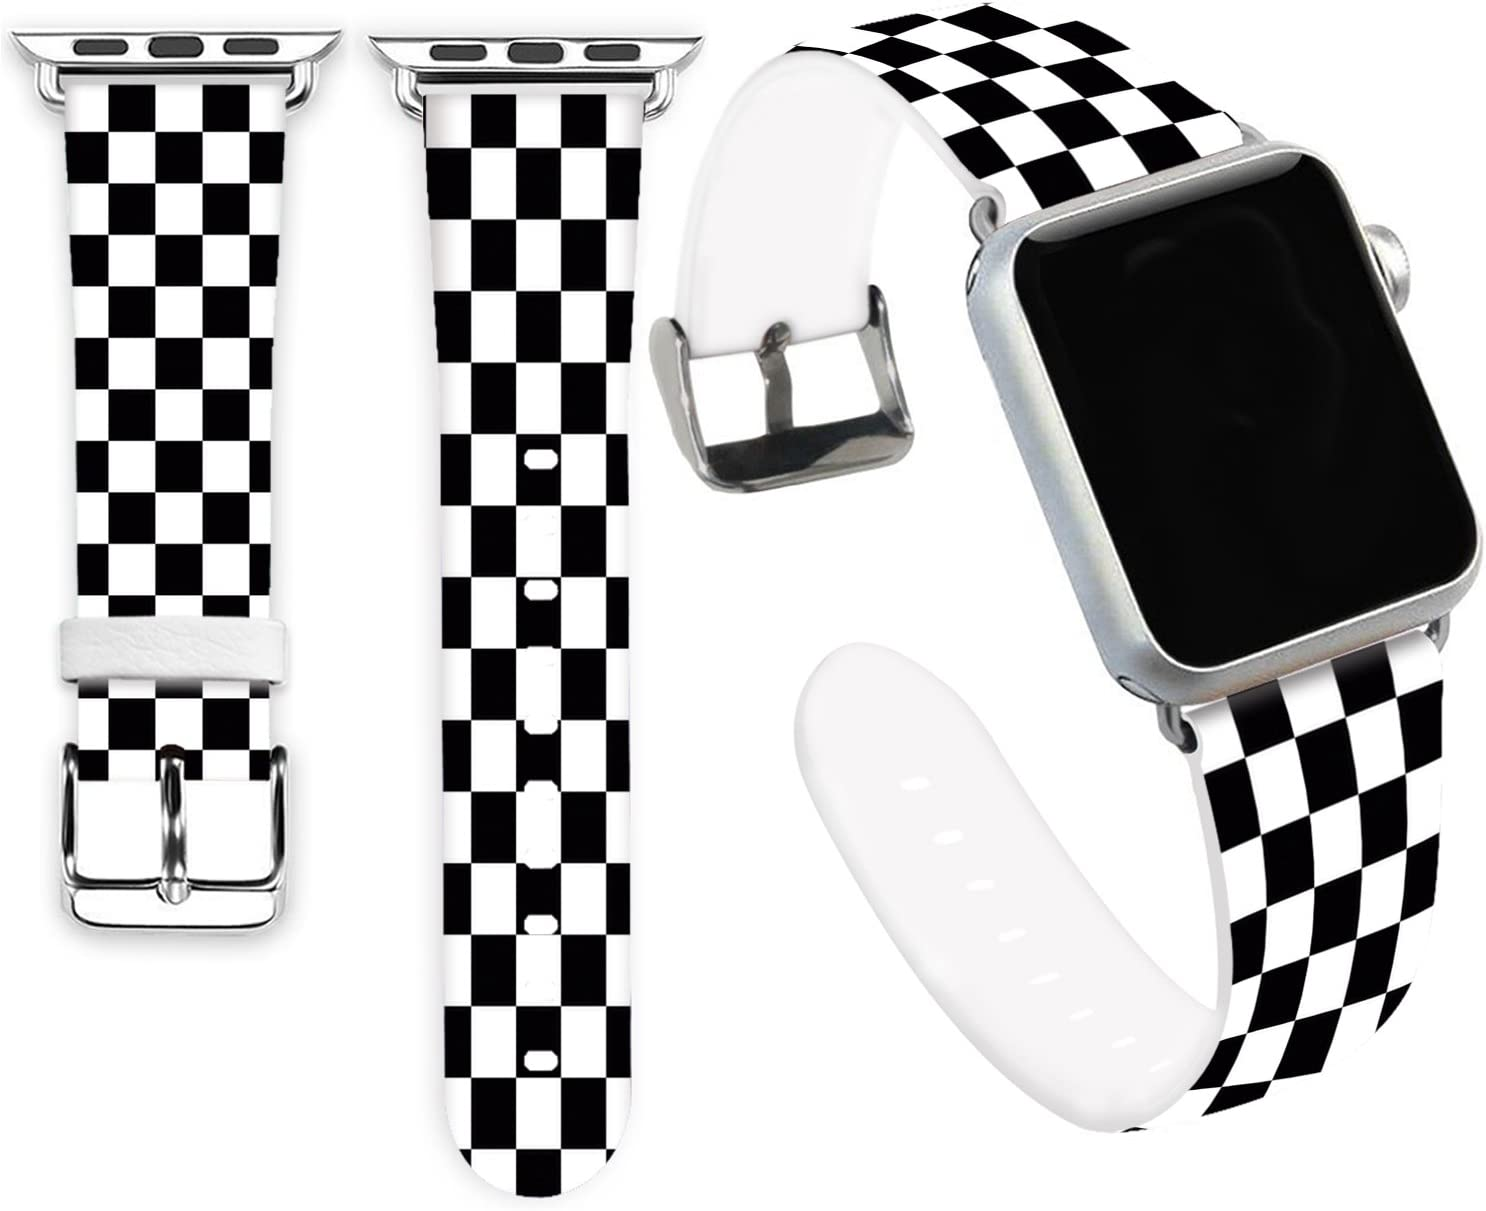 Iwatch Band 38mm,Jolook Soft Leather Sport Style Replacement iWatch Strap for Apple Watch 38mm 40mm Series 6/5/4/3/2/1 - Black and White Grid